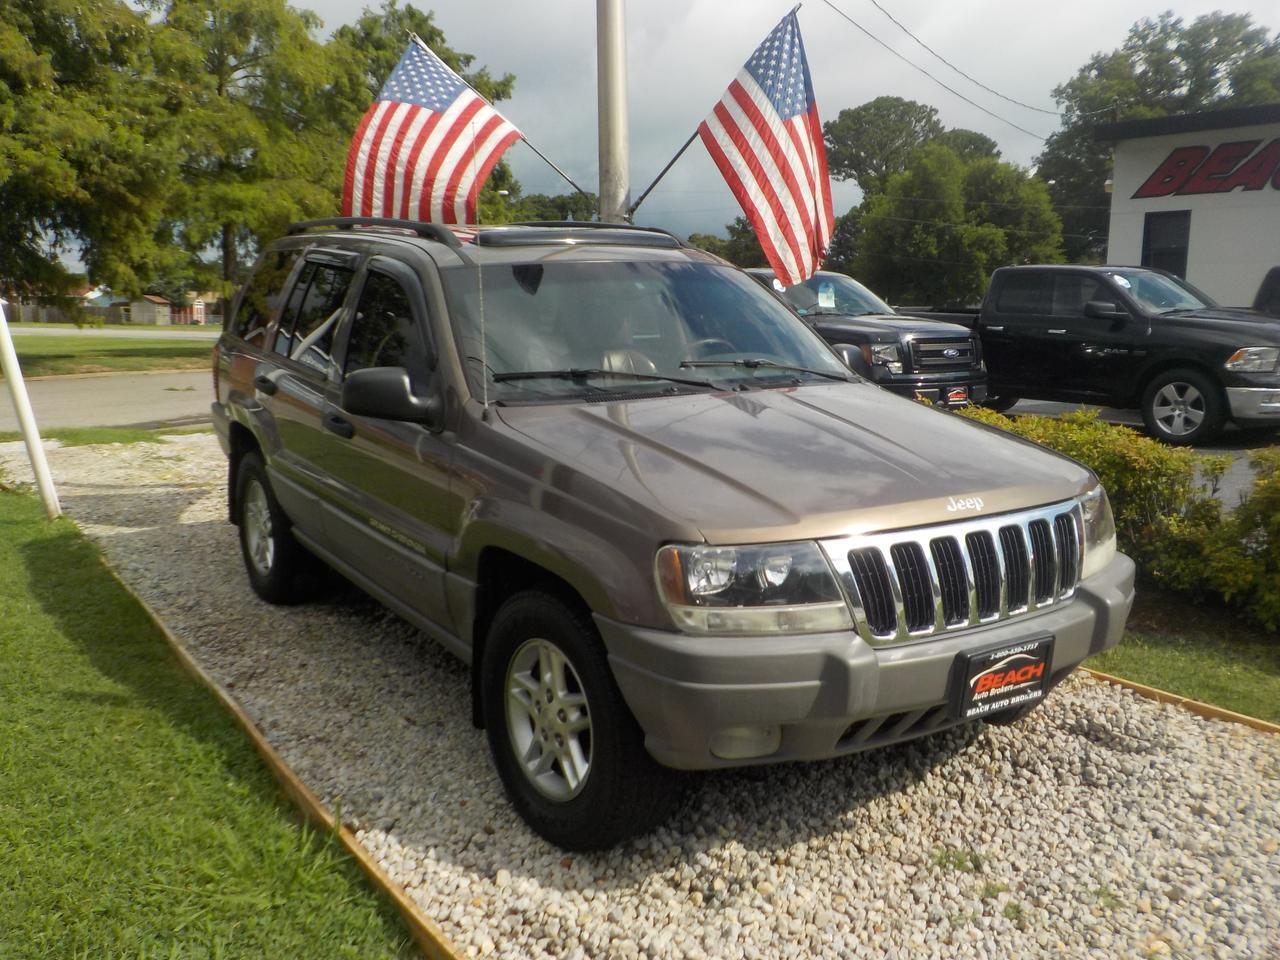 2002 JEEP GRAND CHEROKEE LAREDO 4X4, WHOLESALE TO THE PUBLIC, LEATHER , SUNROOF, POWER SEATS, SINGLE CD PLAYER!